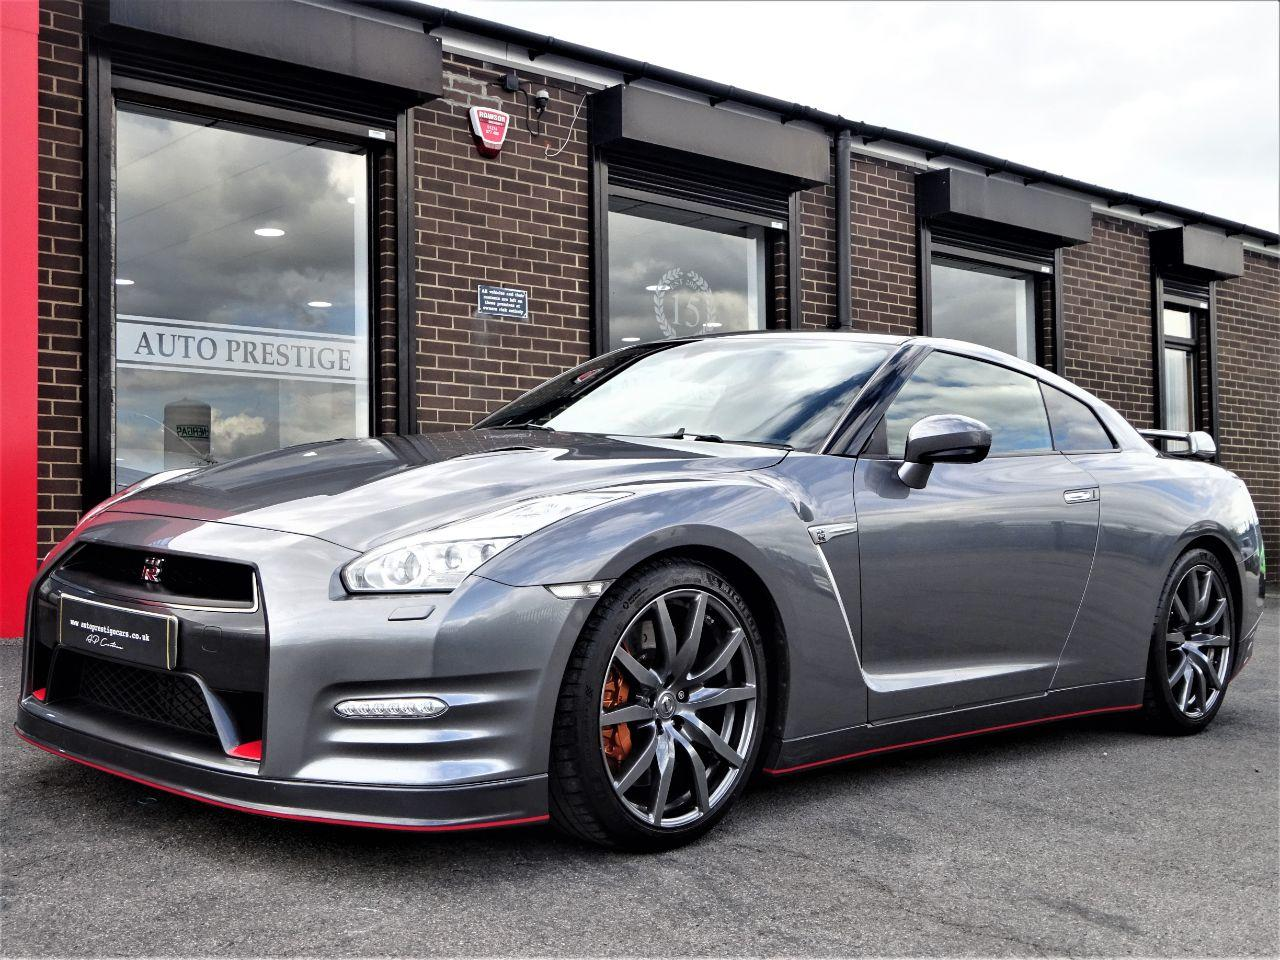 Nissan GT-R 3.8 [550] Premium 2dr Auto FACELIFT 64 REG IN METALLIC GREY Coupe Petrol Grey at Autoprestige Bradford